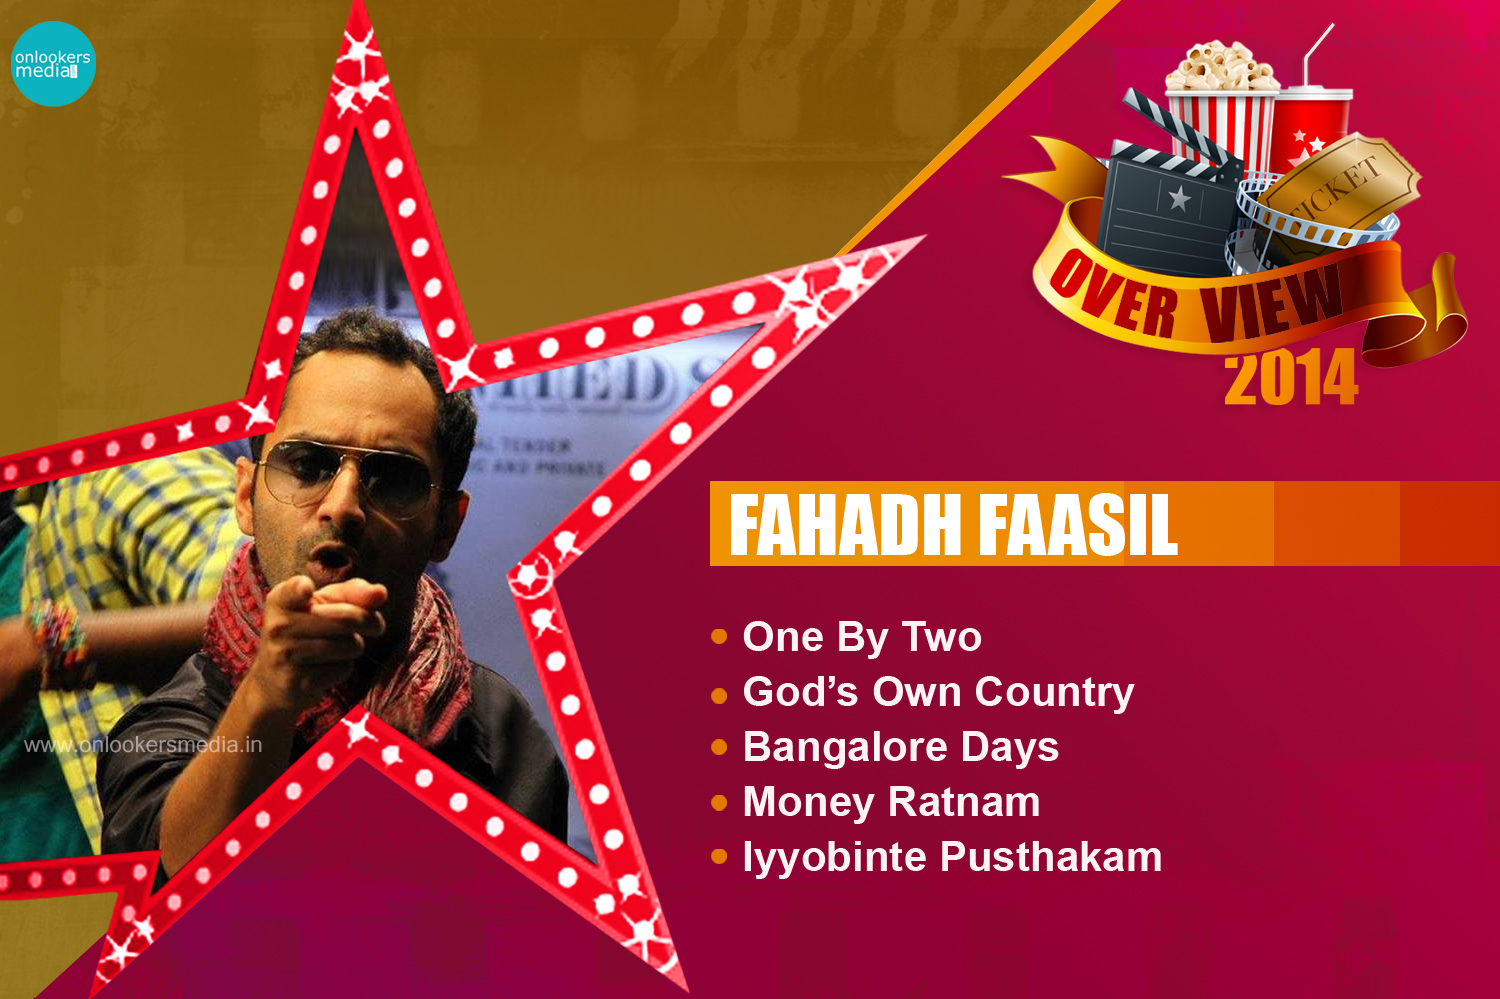 Fahadh Faail 2014 Overview-Report-Hit Flop Movie List-One By Two-Onlookers Media